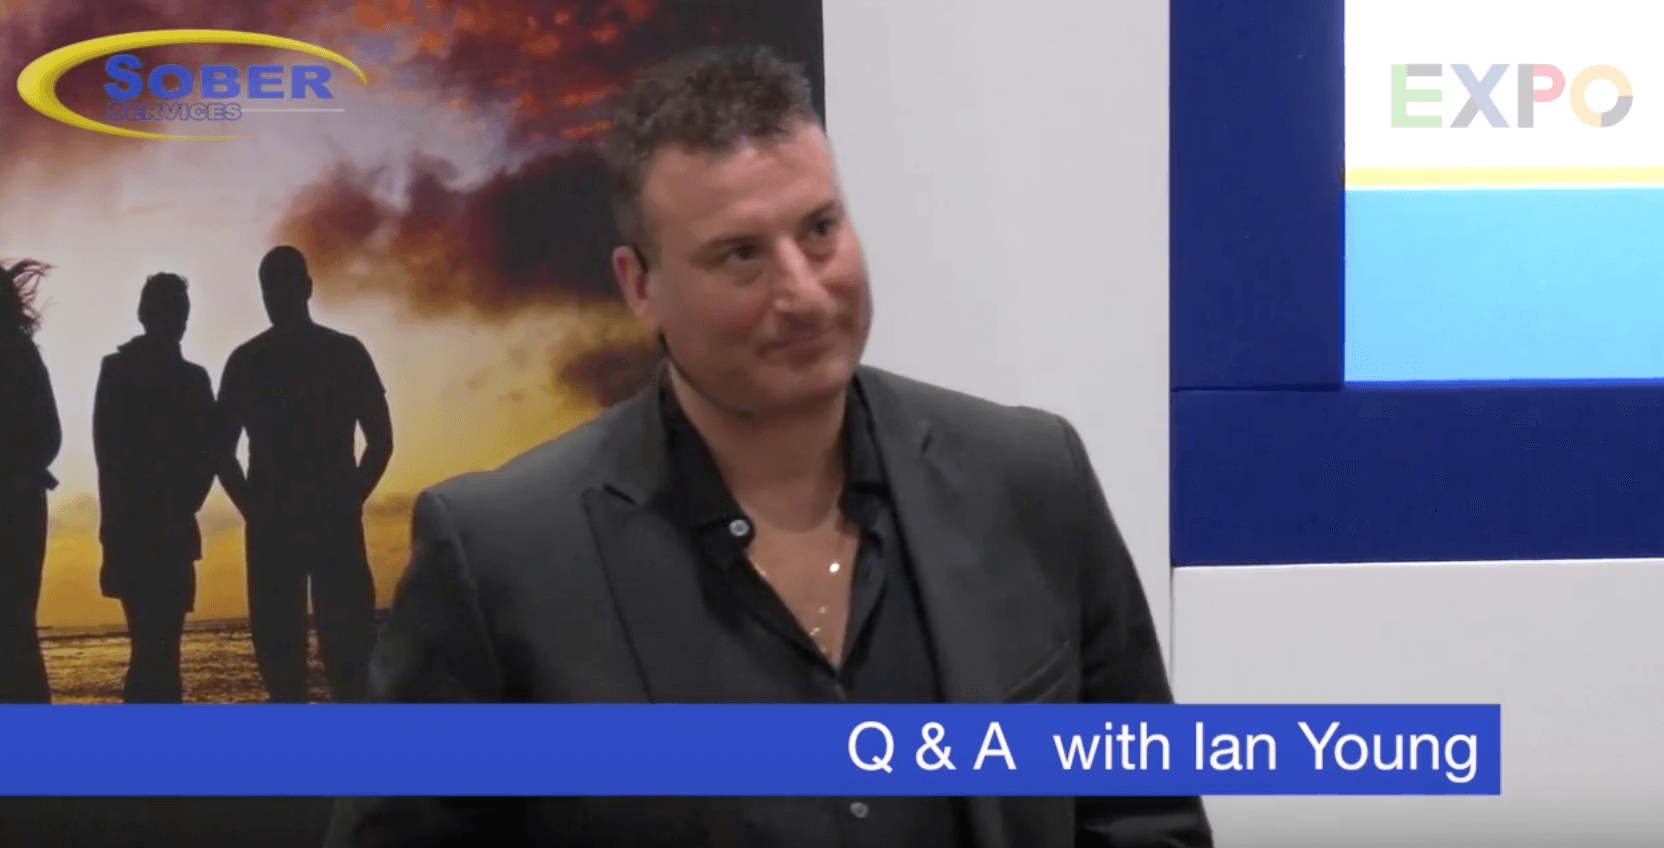 Q&A With Ian Young